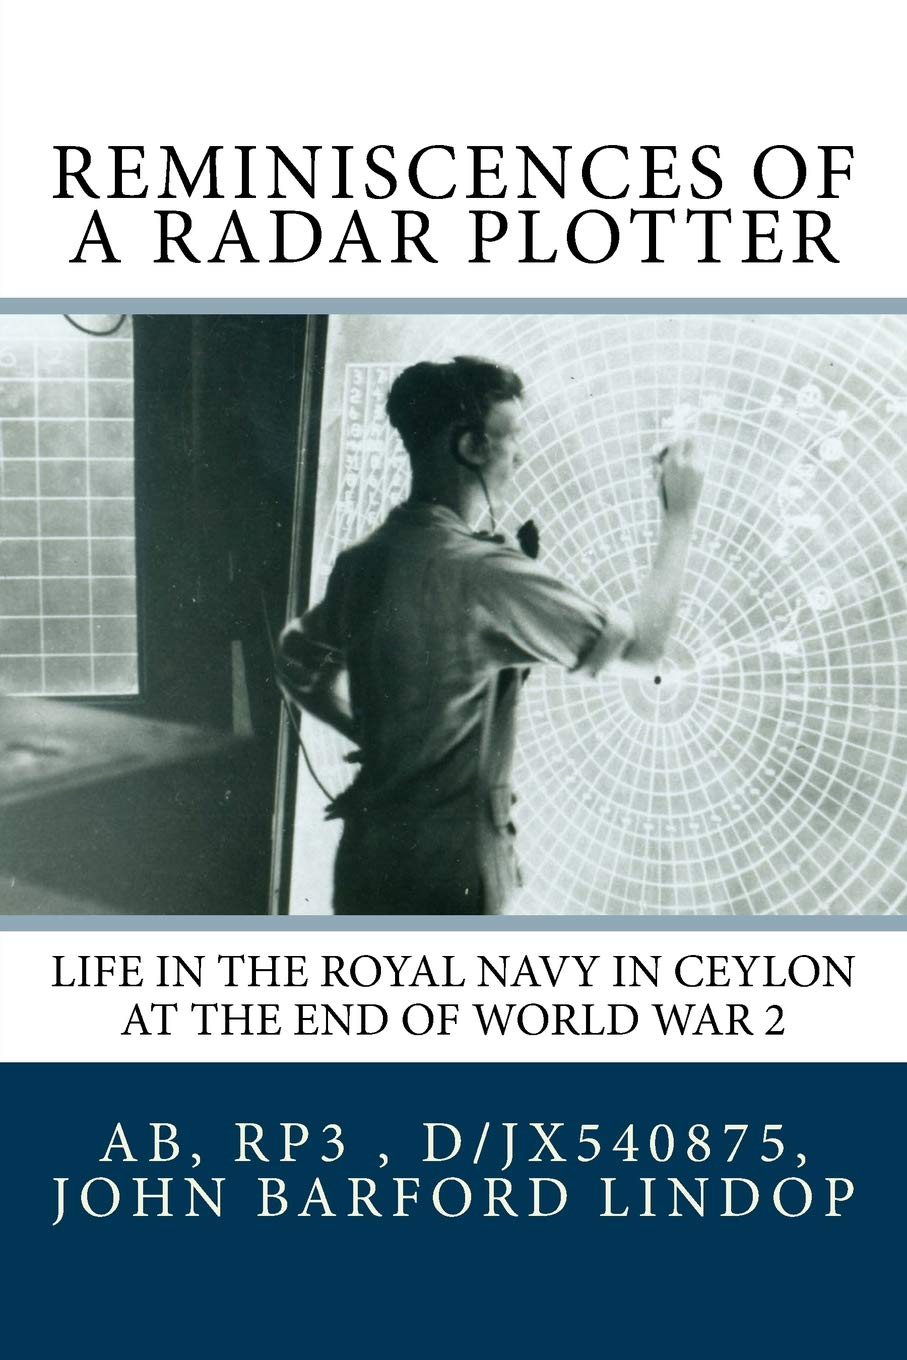 Reminiscences of a Radar Plotter: Life in the Royal Navy in Ceylon at the end of World War 2: Amazon.es: Lindop, John Barford: Libros en idiomas extranjeros